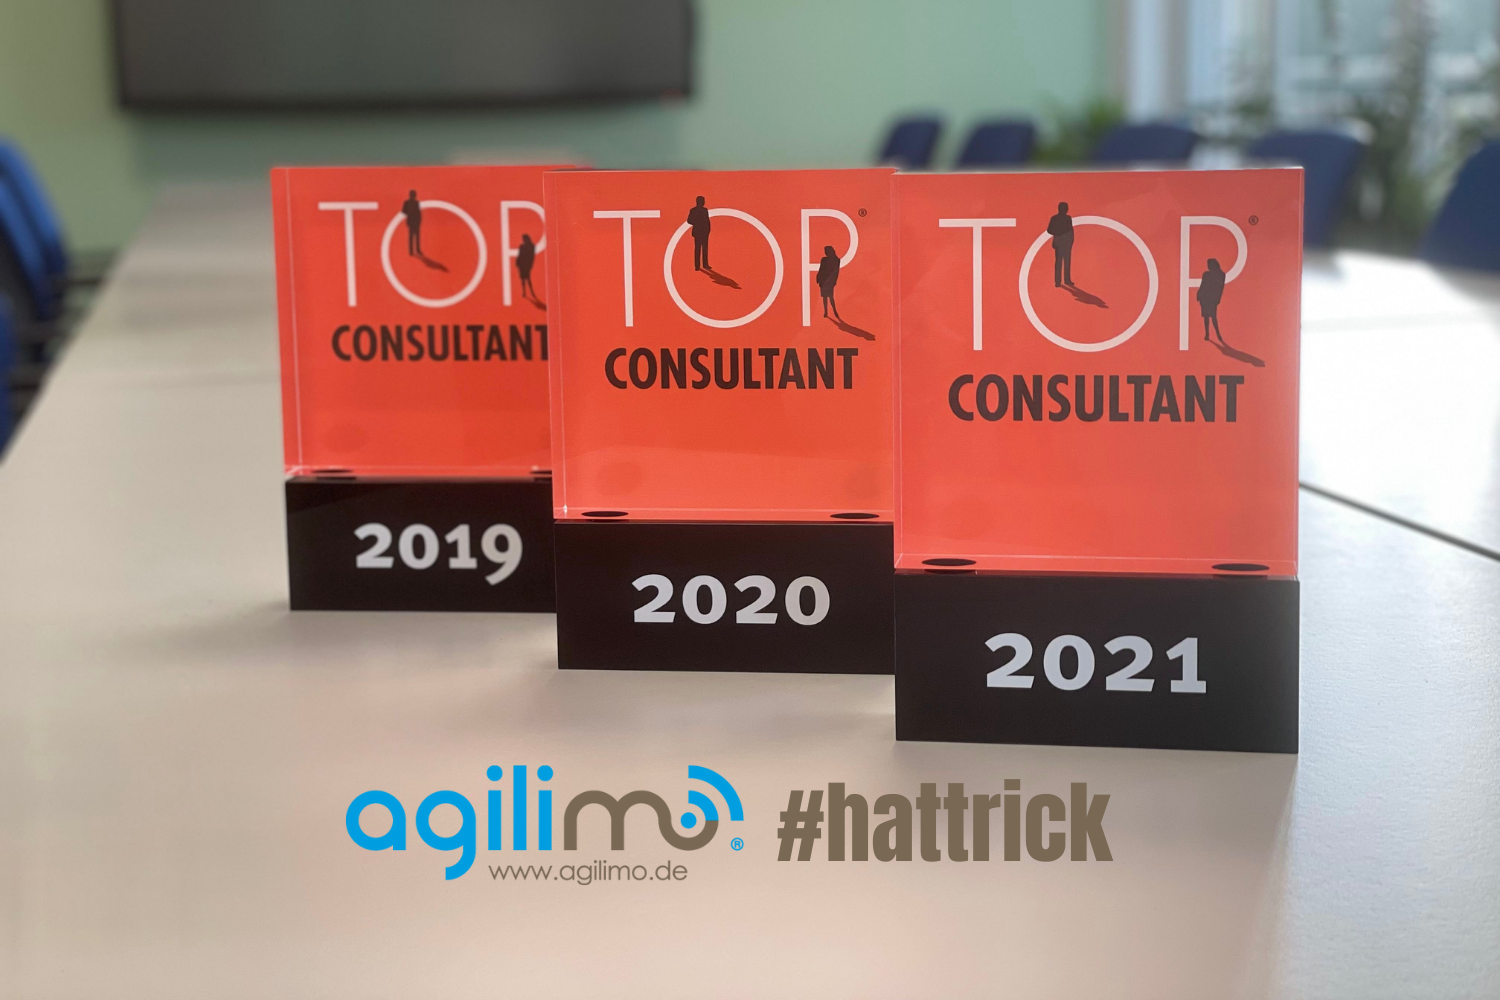 Top Consultant 2021 - agilimo Consulting GmbH